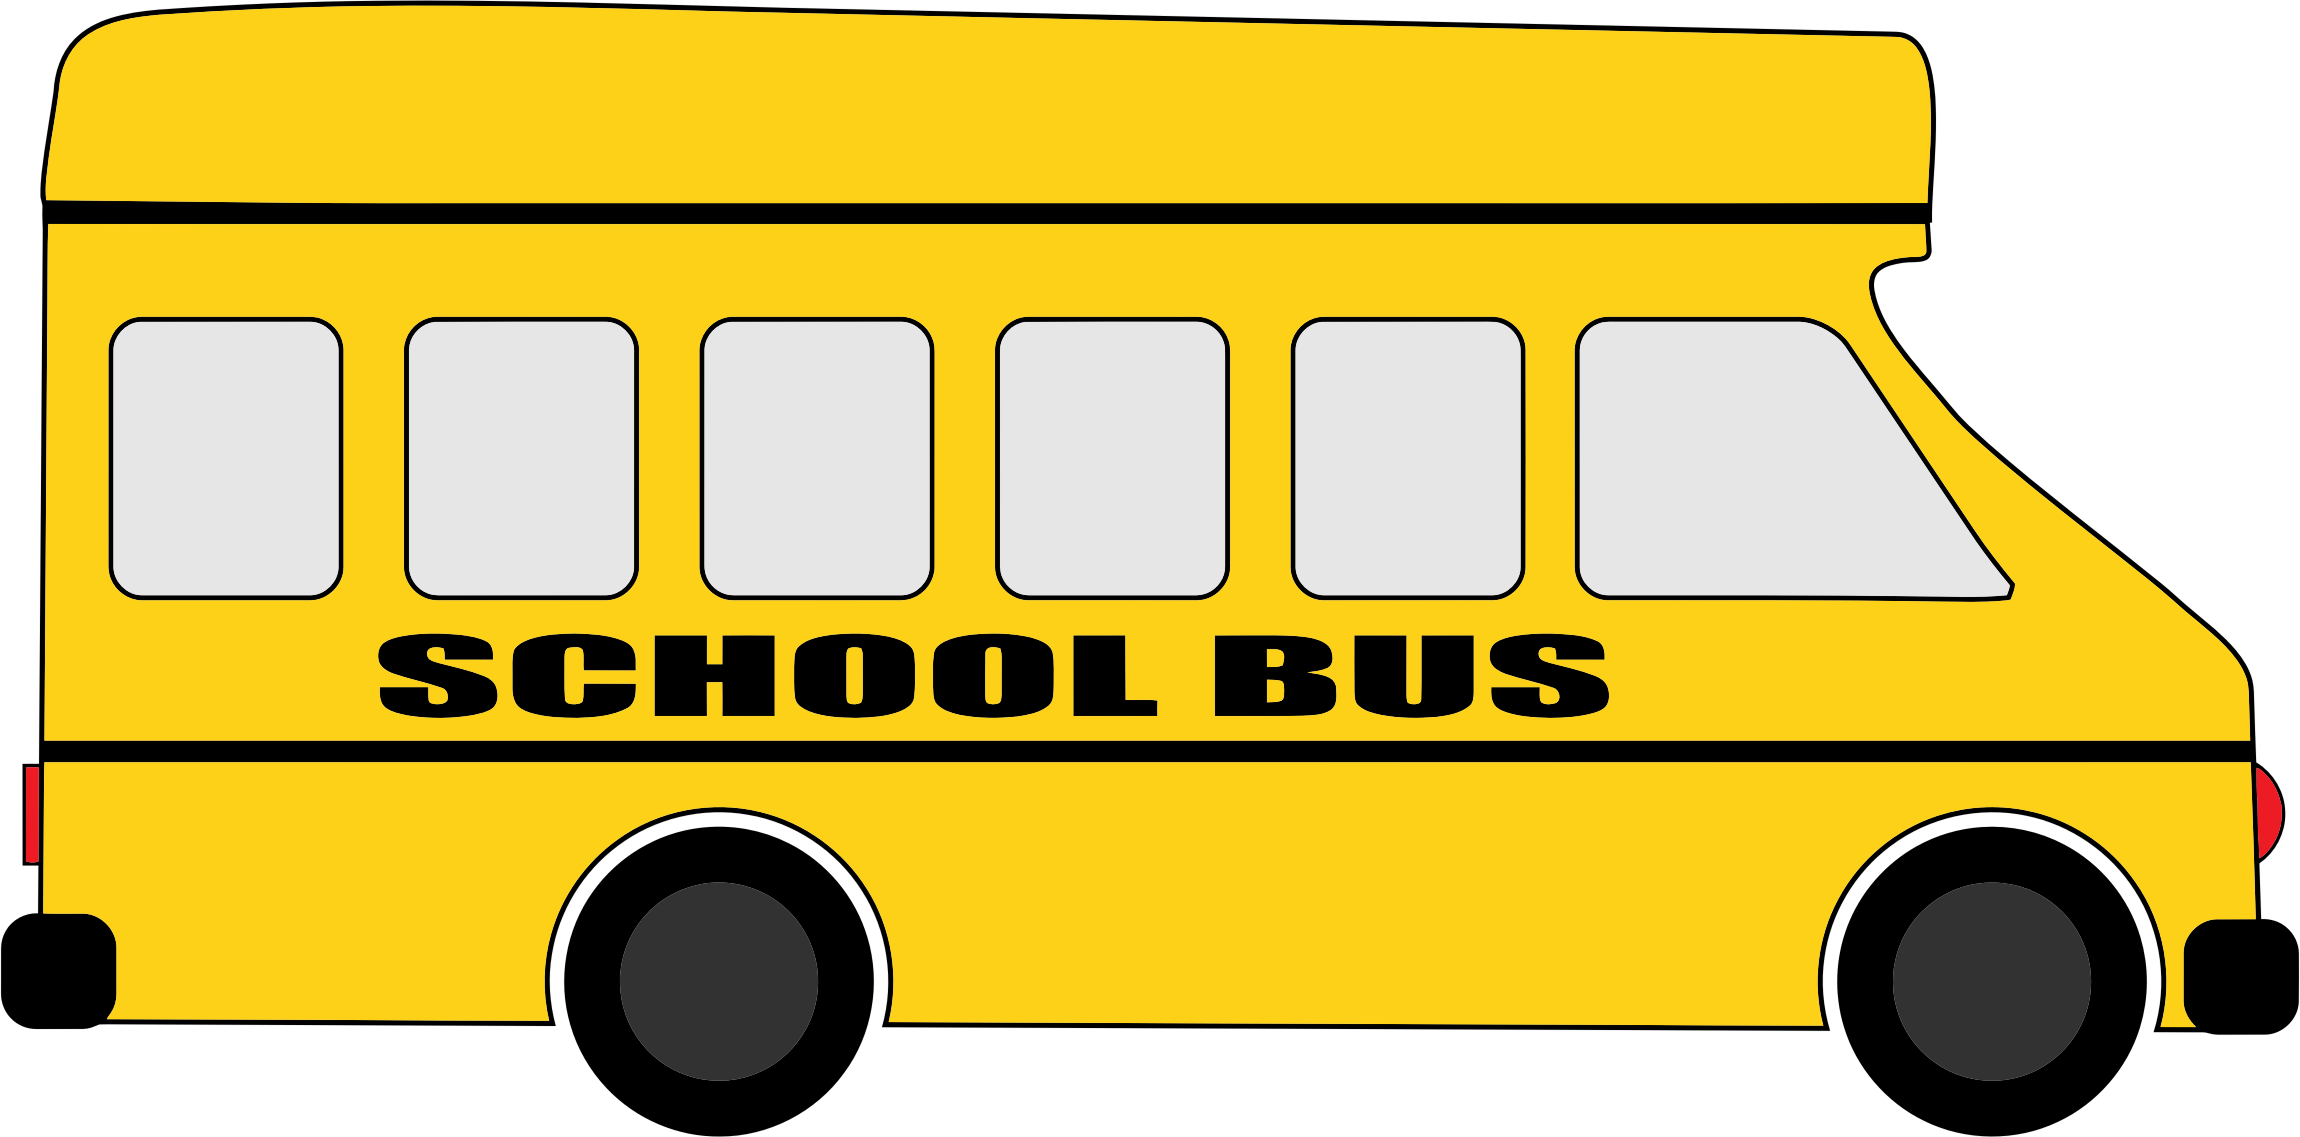 School bus flashing yellow light clipart jpg freeuse School bus flashing yellow light clipart - ClipartFest jpg freeuse